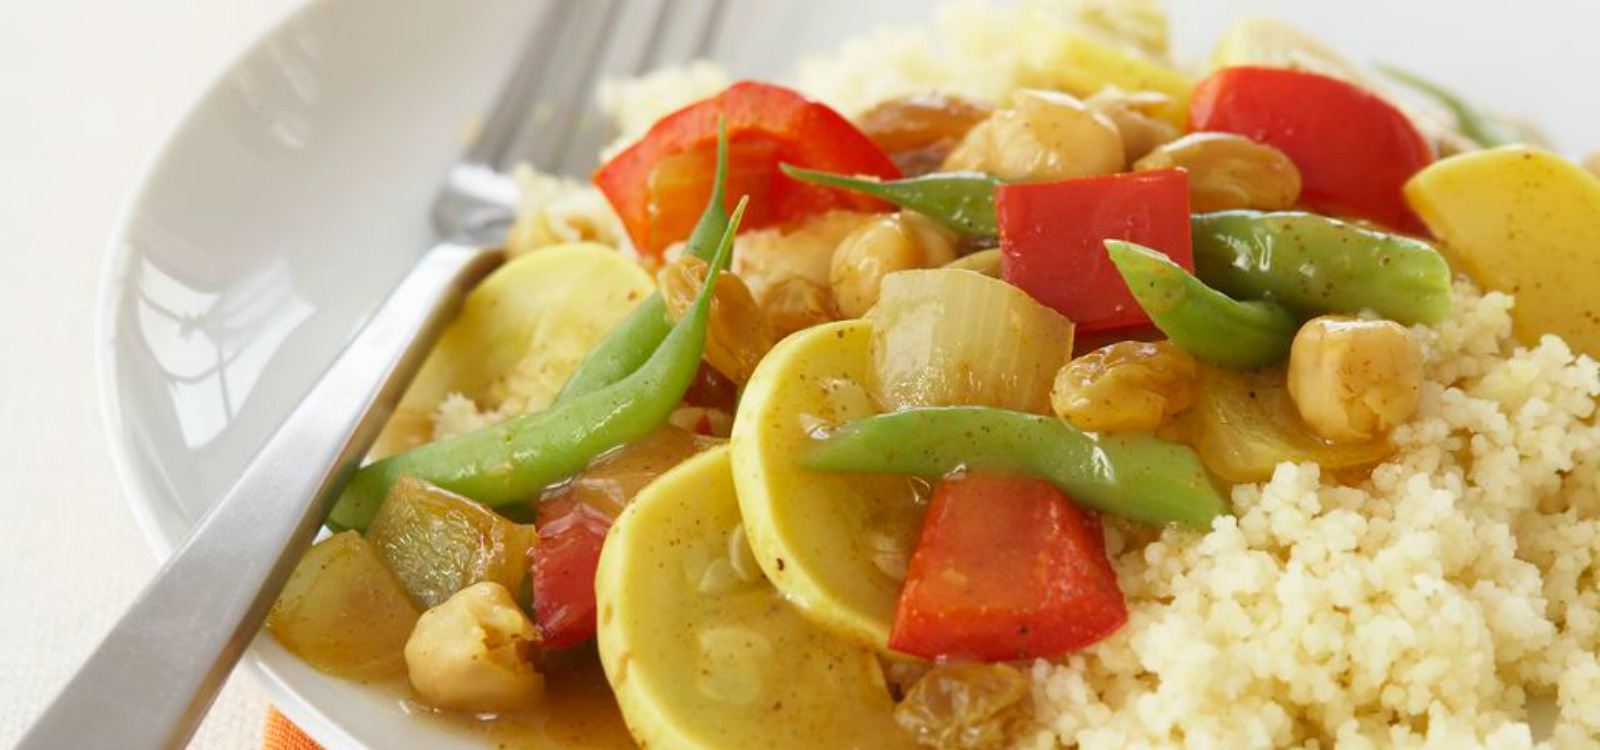 japanese curry with vegetables